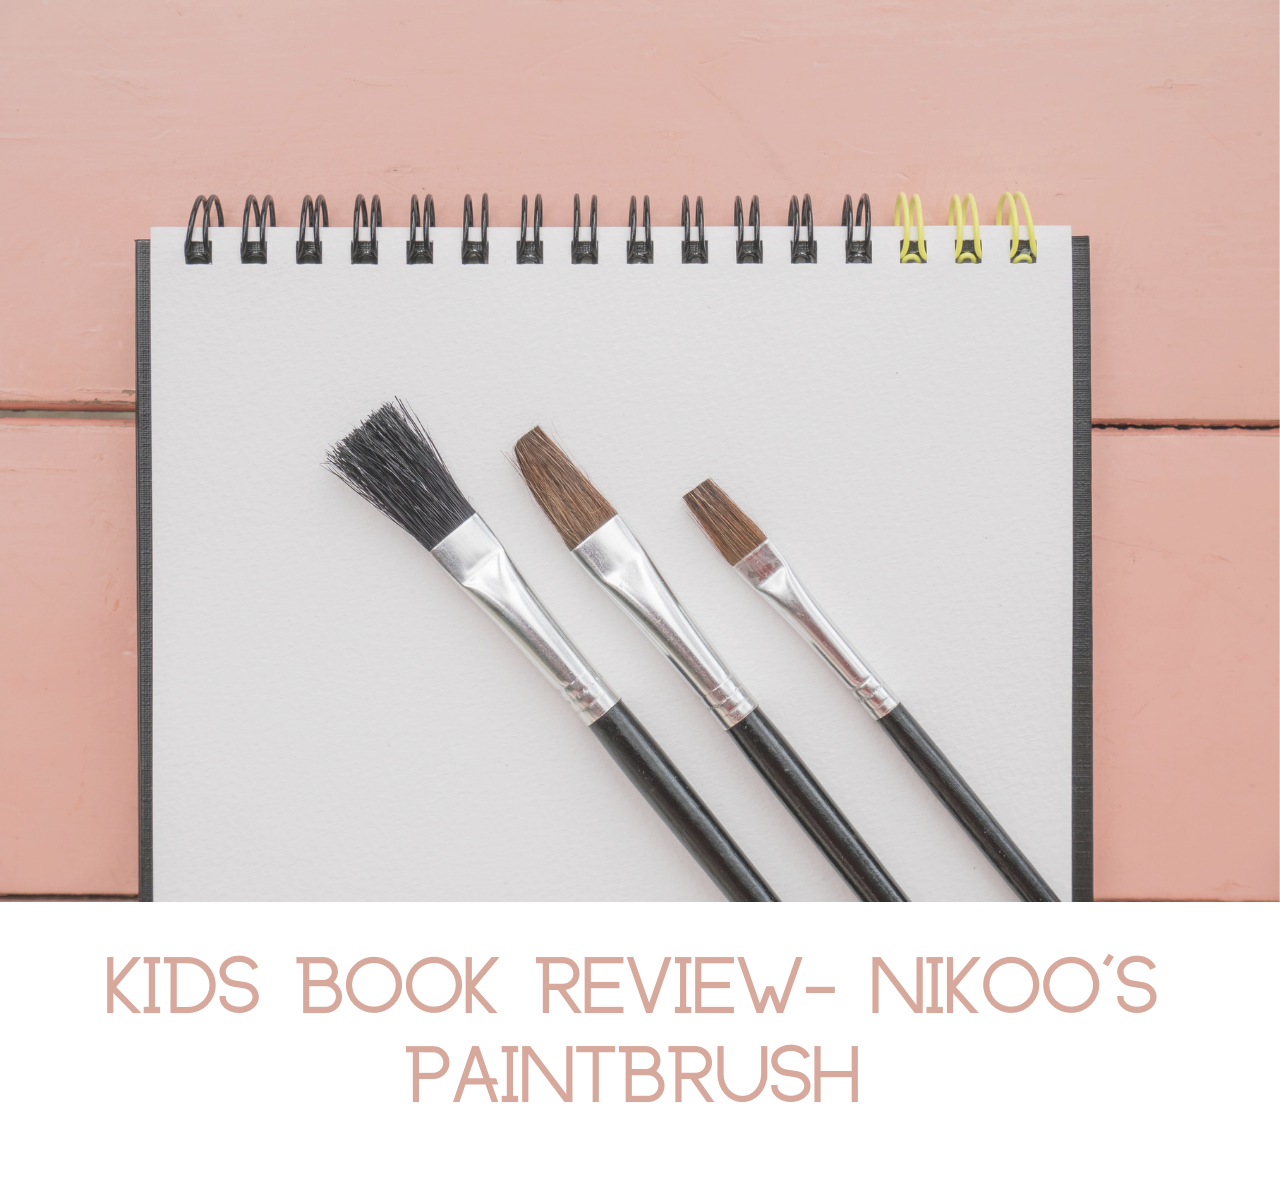 Kids Book Review- Nikoo's paintbrush-Tulika Publications